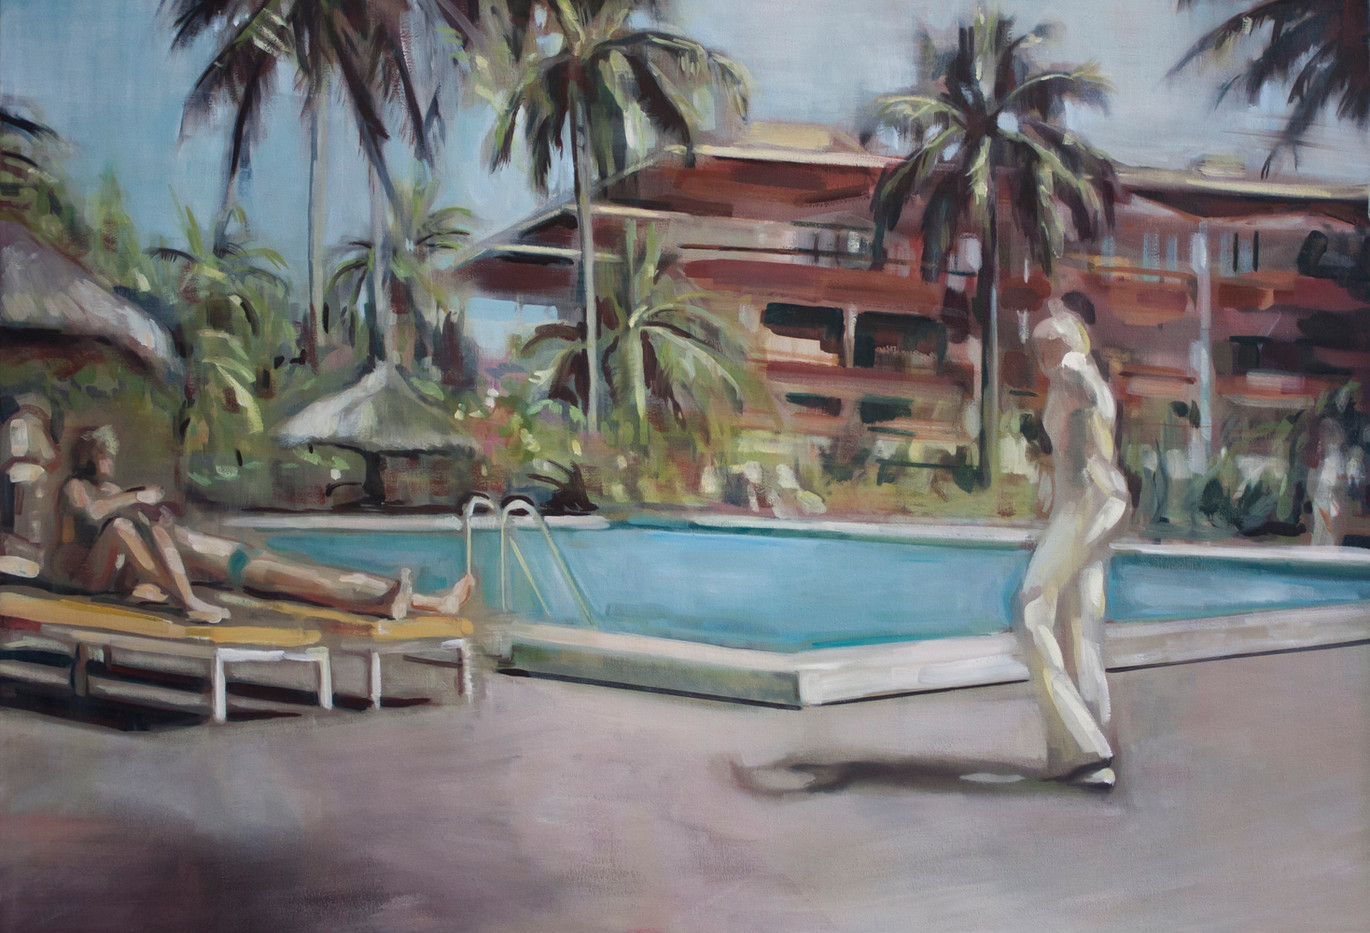 Kate Gottgens | Everything you want | 2014 | Oil on Canvas | 48 x 120 cm